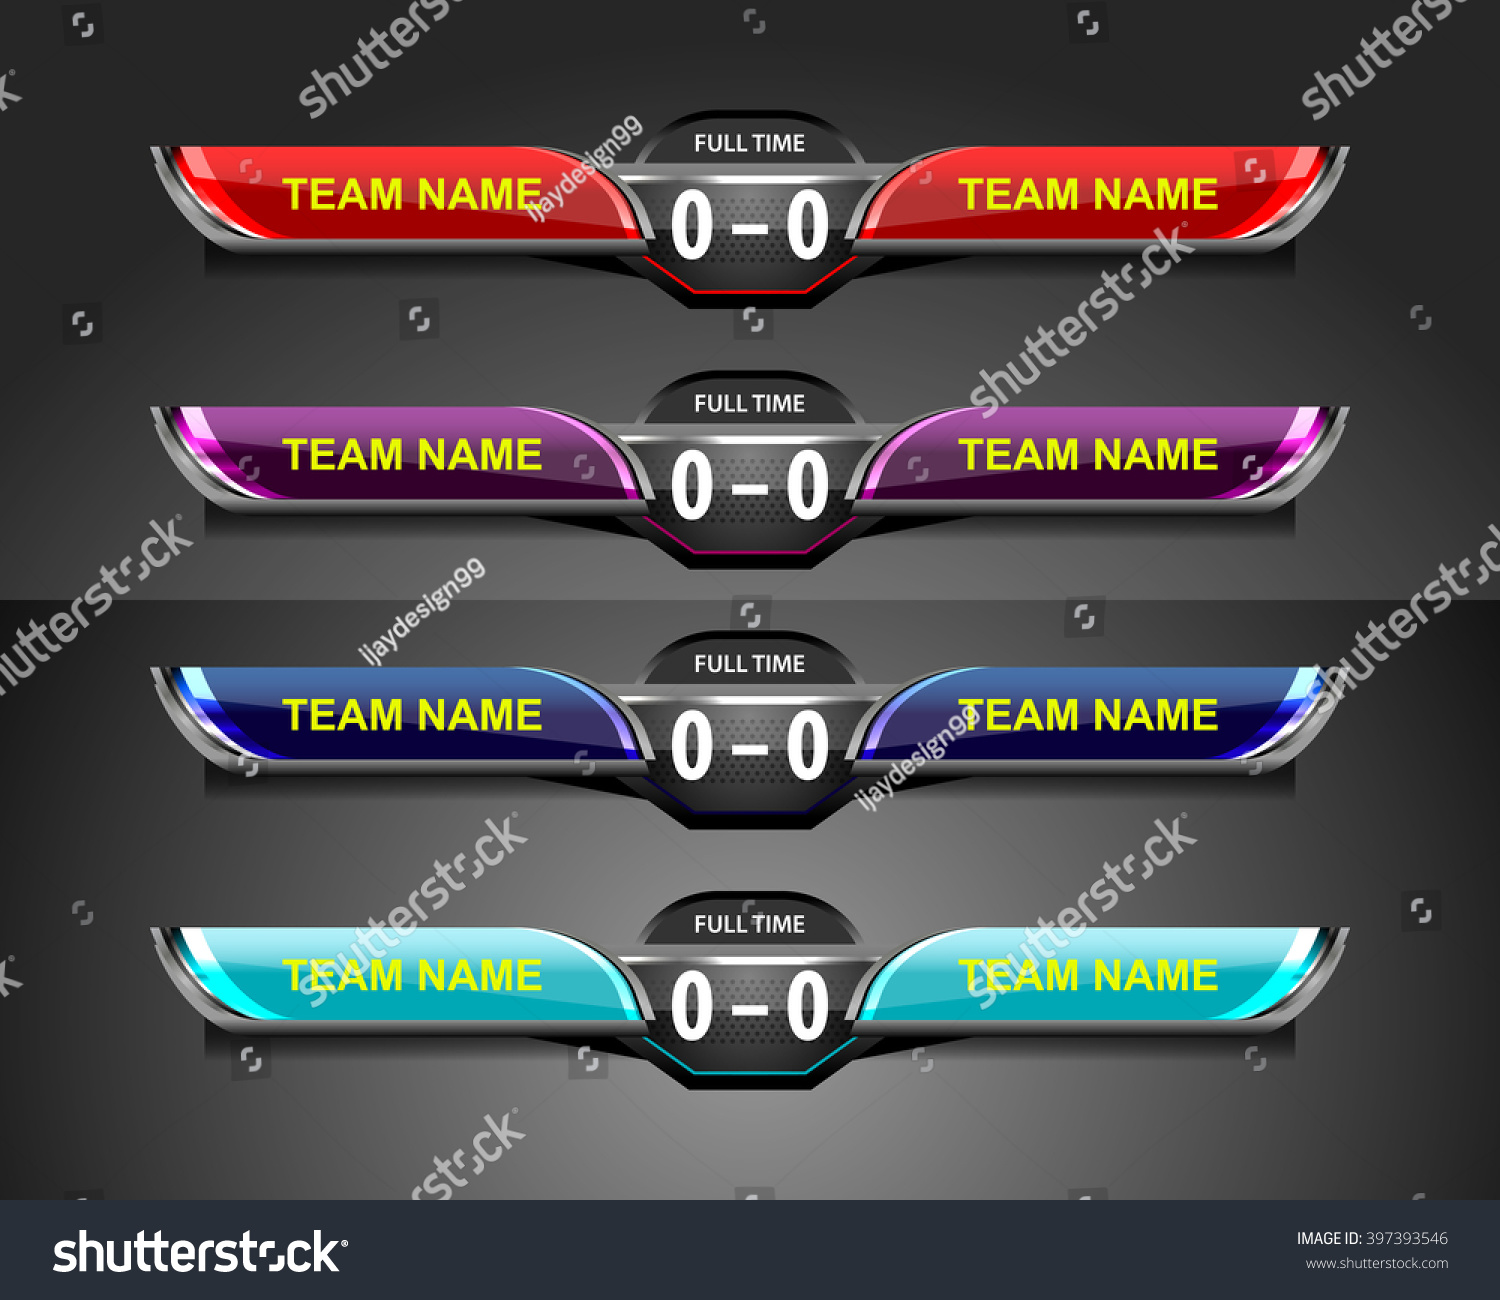 Scoreboard Template Sport Game Soccer Football Vector – Scoreboard Template